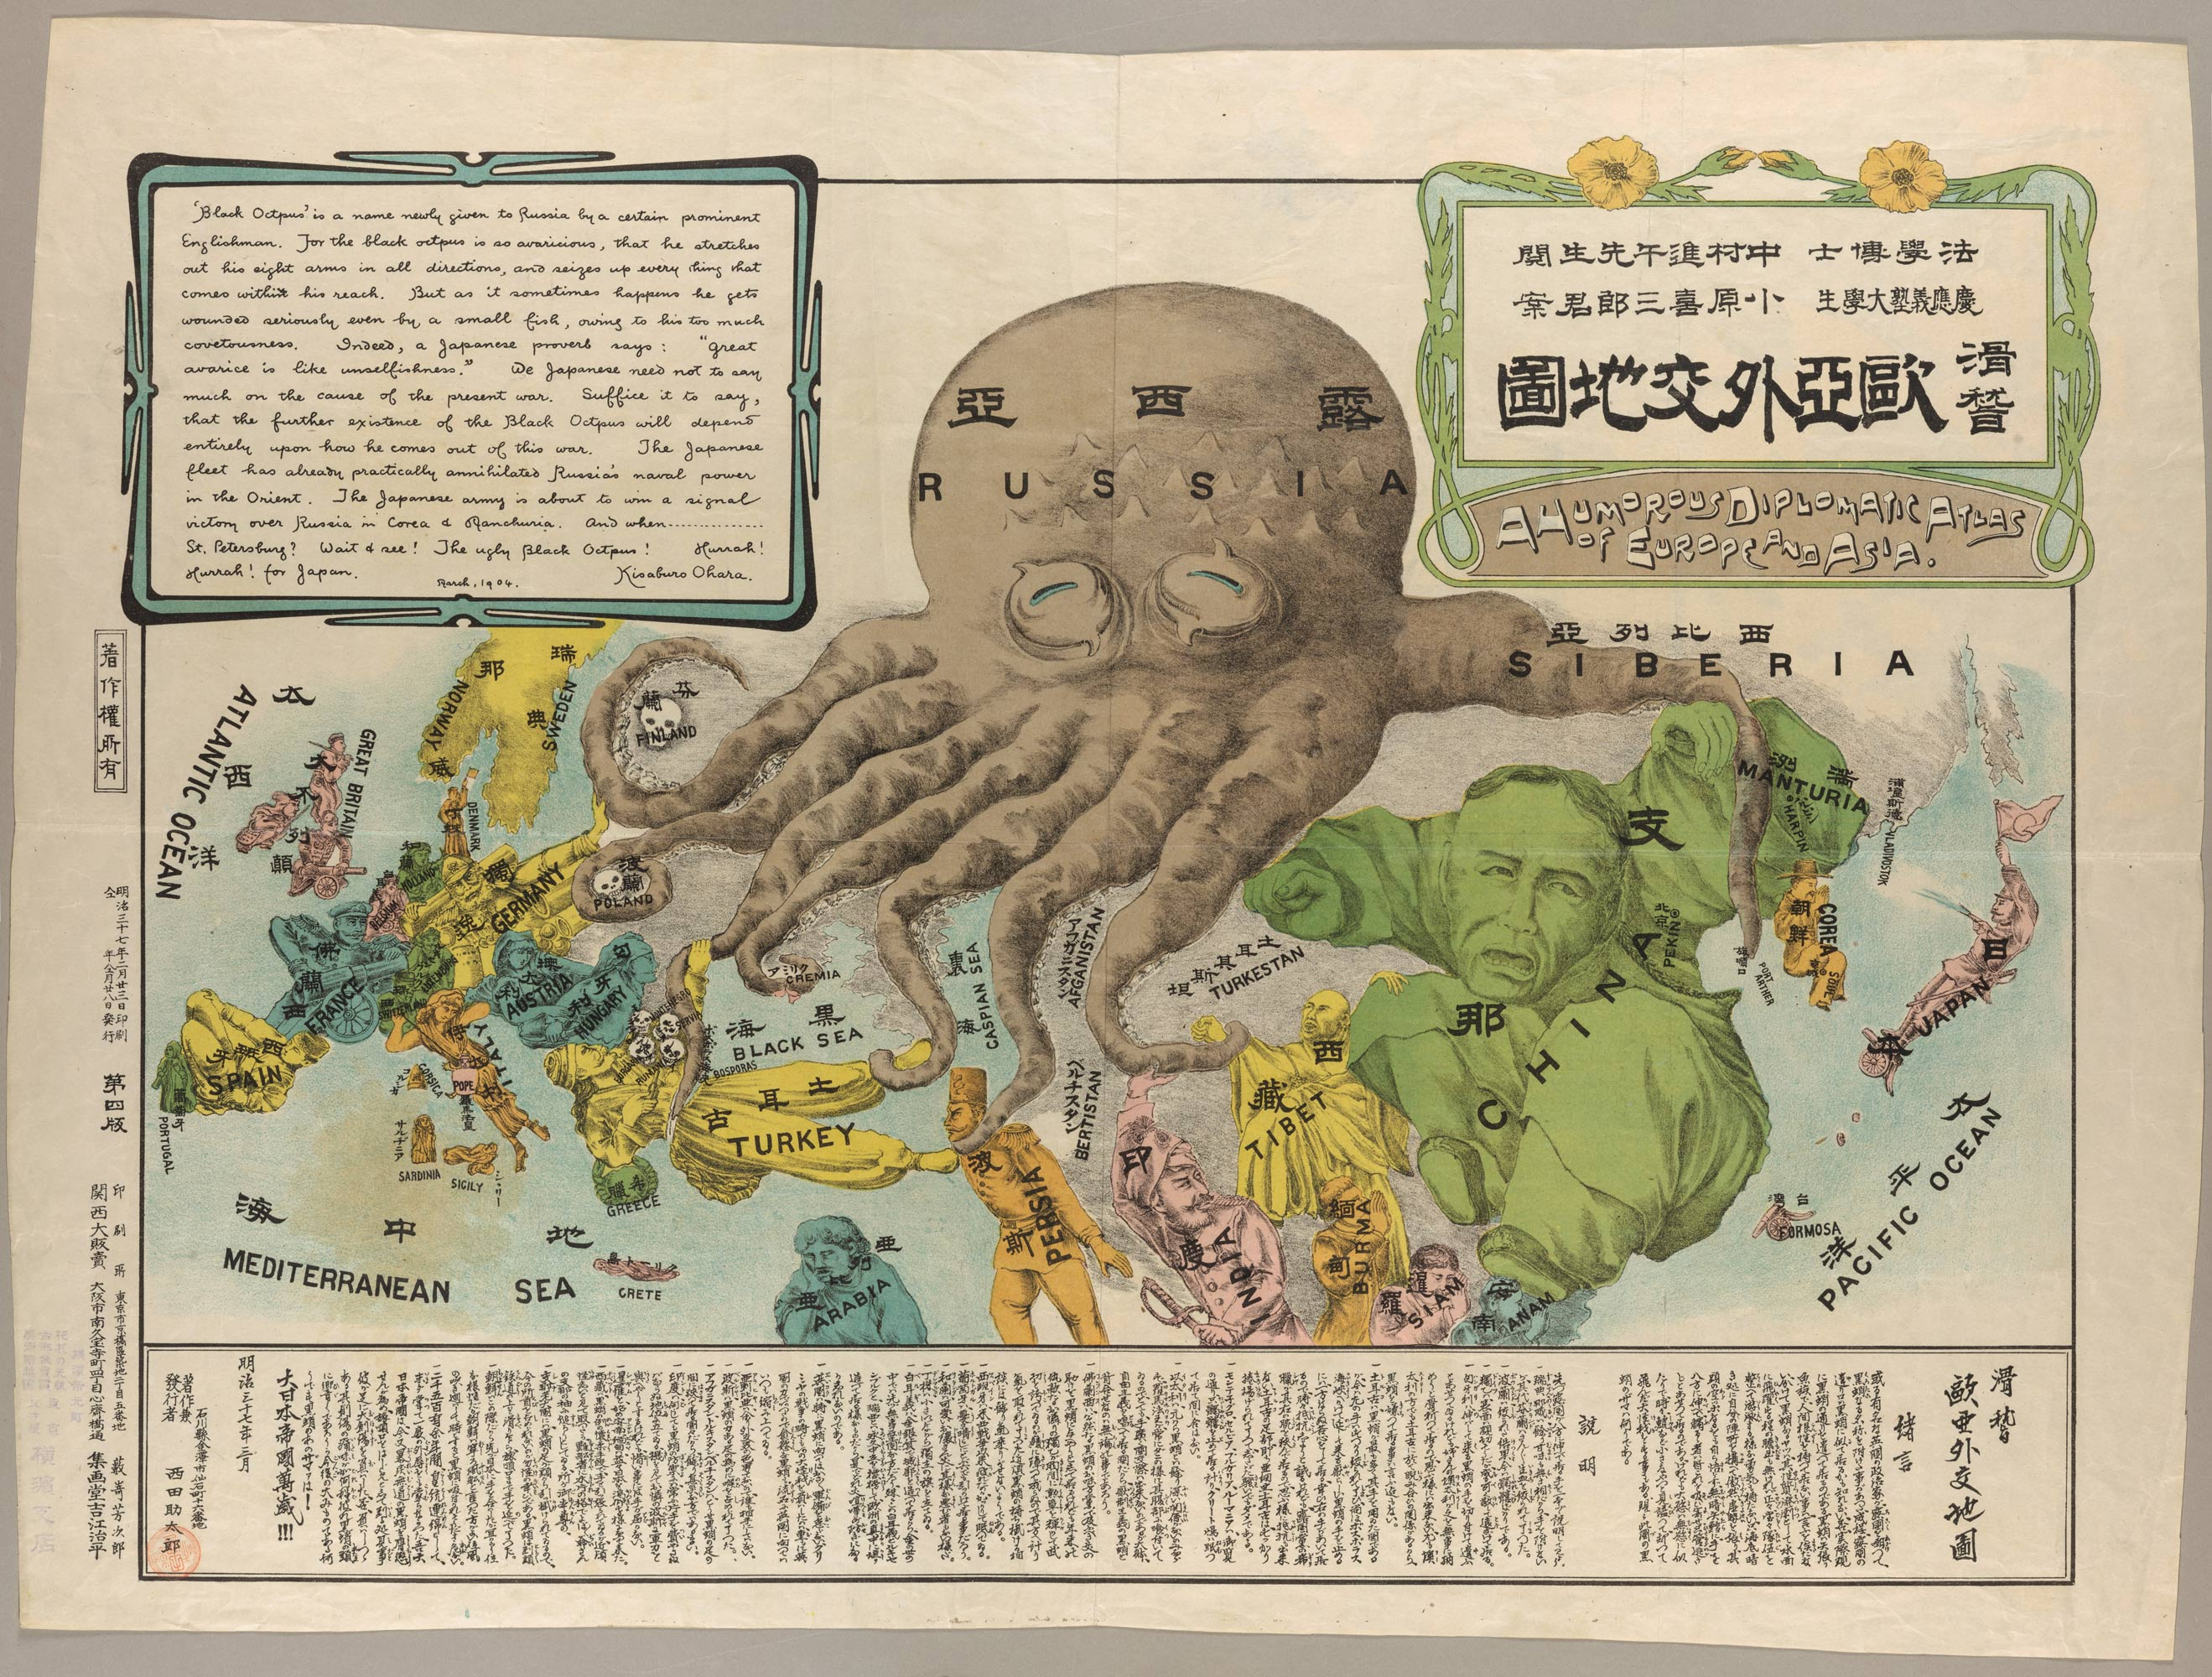 A humorous diplomatic atlas of Europe and Asia